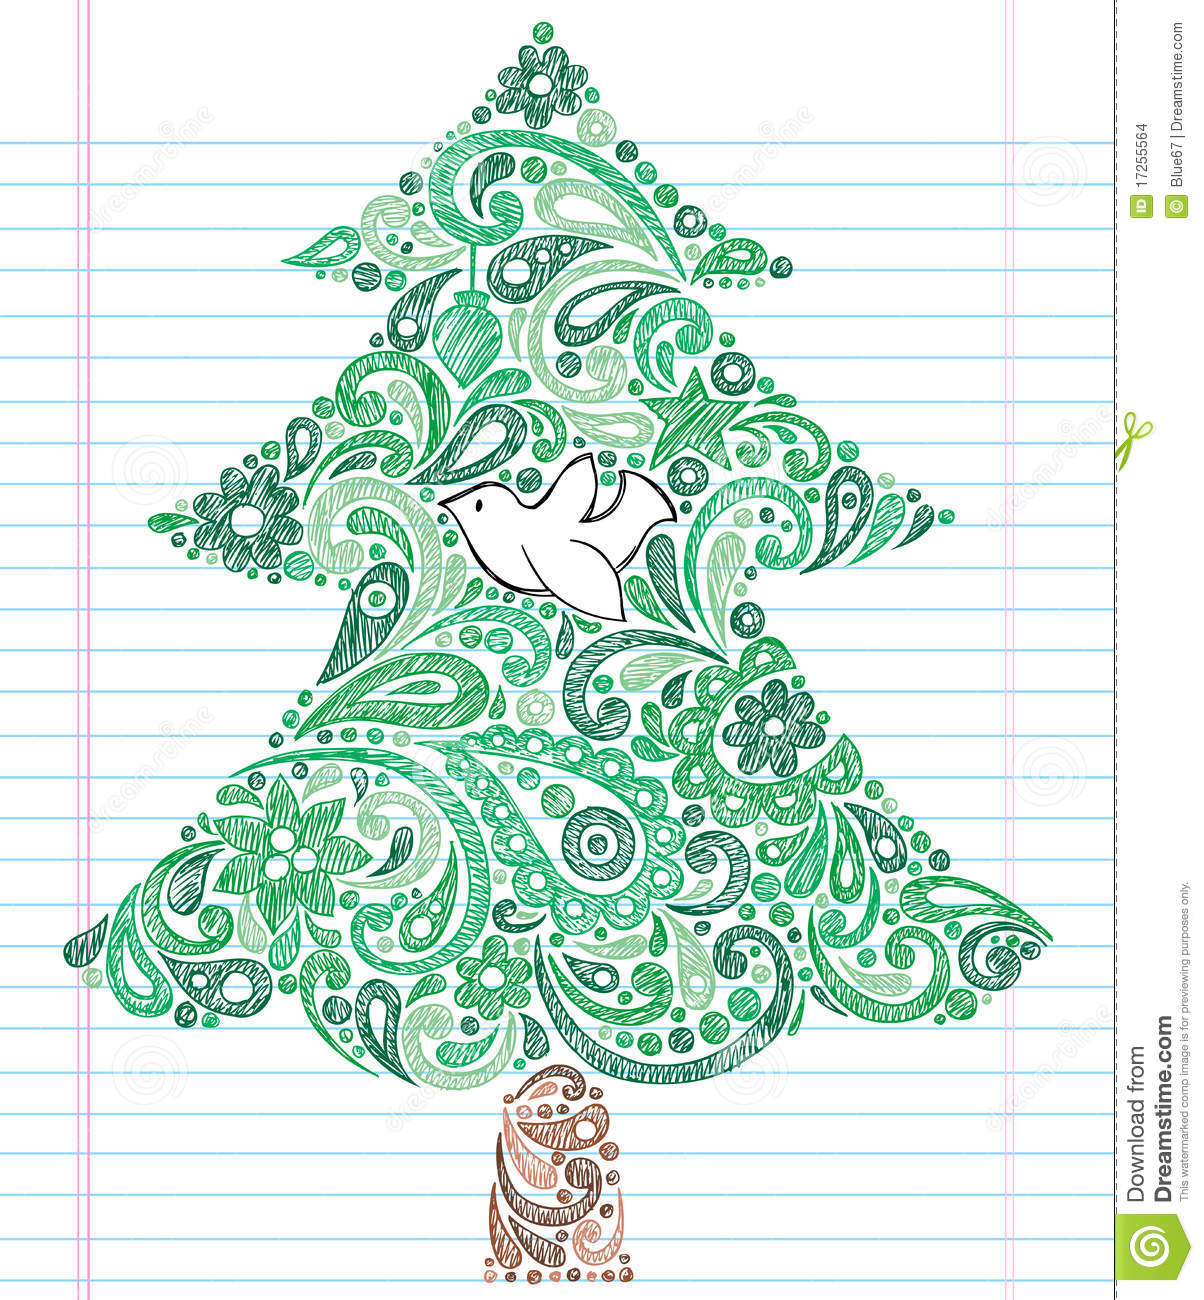 Hand-Drawn Sketchy Doodle Christmas Tree